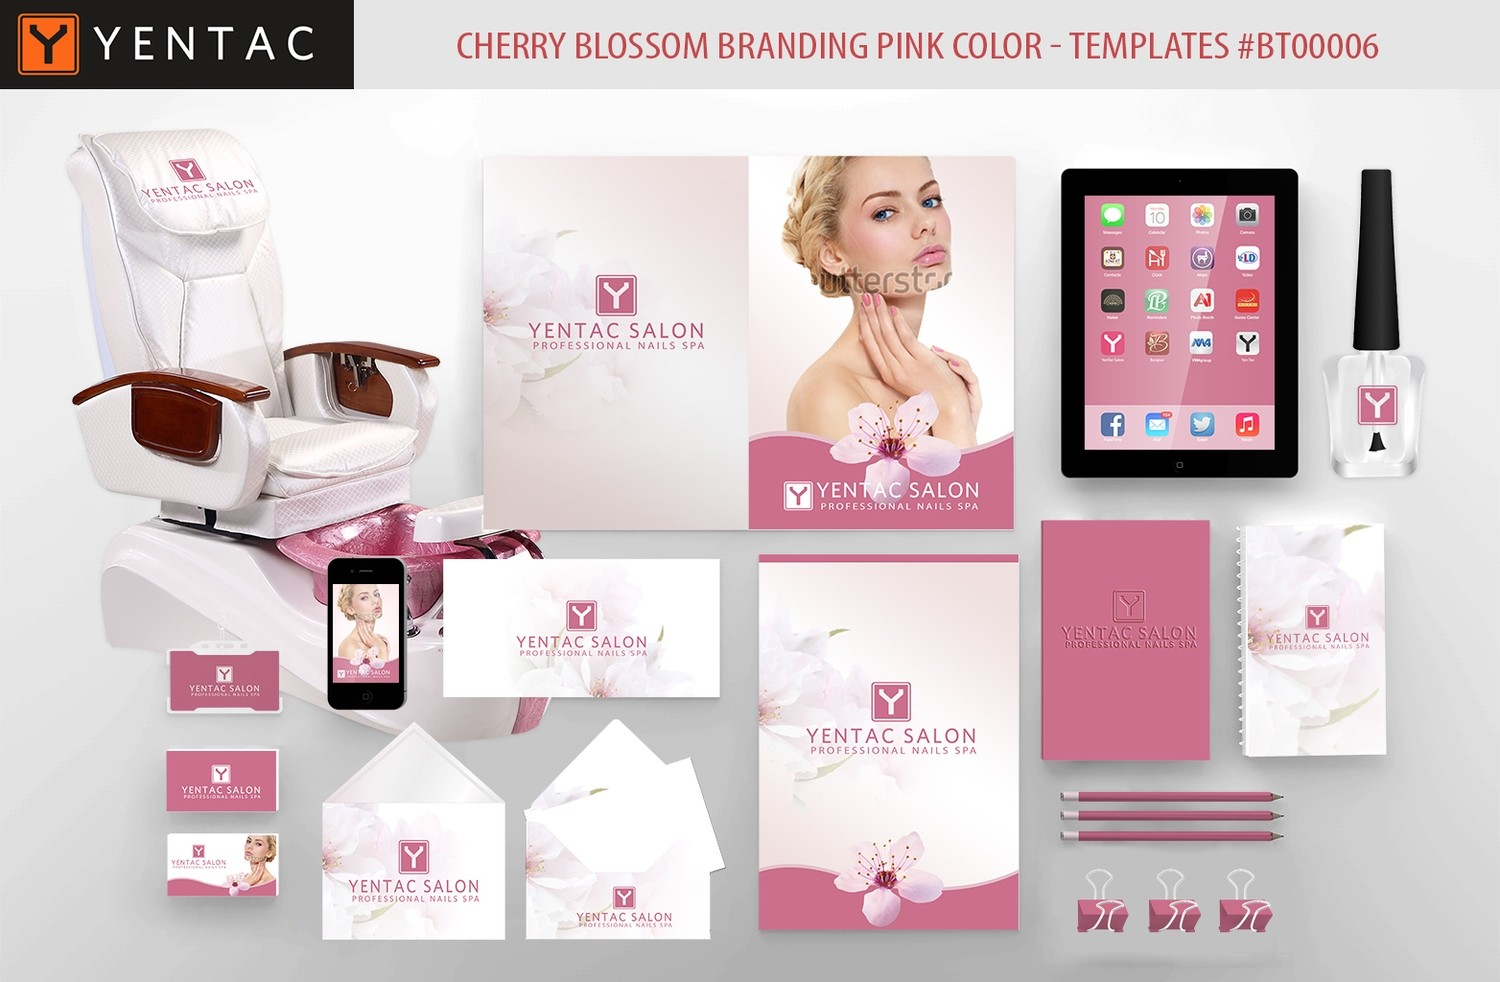 Cherry Blossom Branding  Pink Color - Stationary Mockup - YENTAC Nail Salon Templates:  BT000006